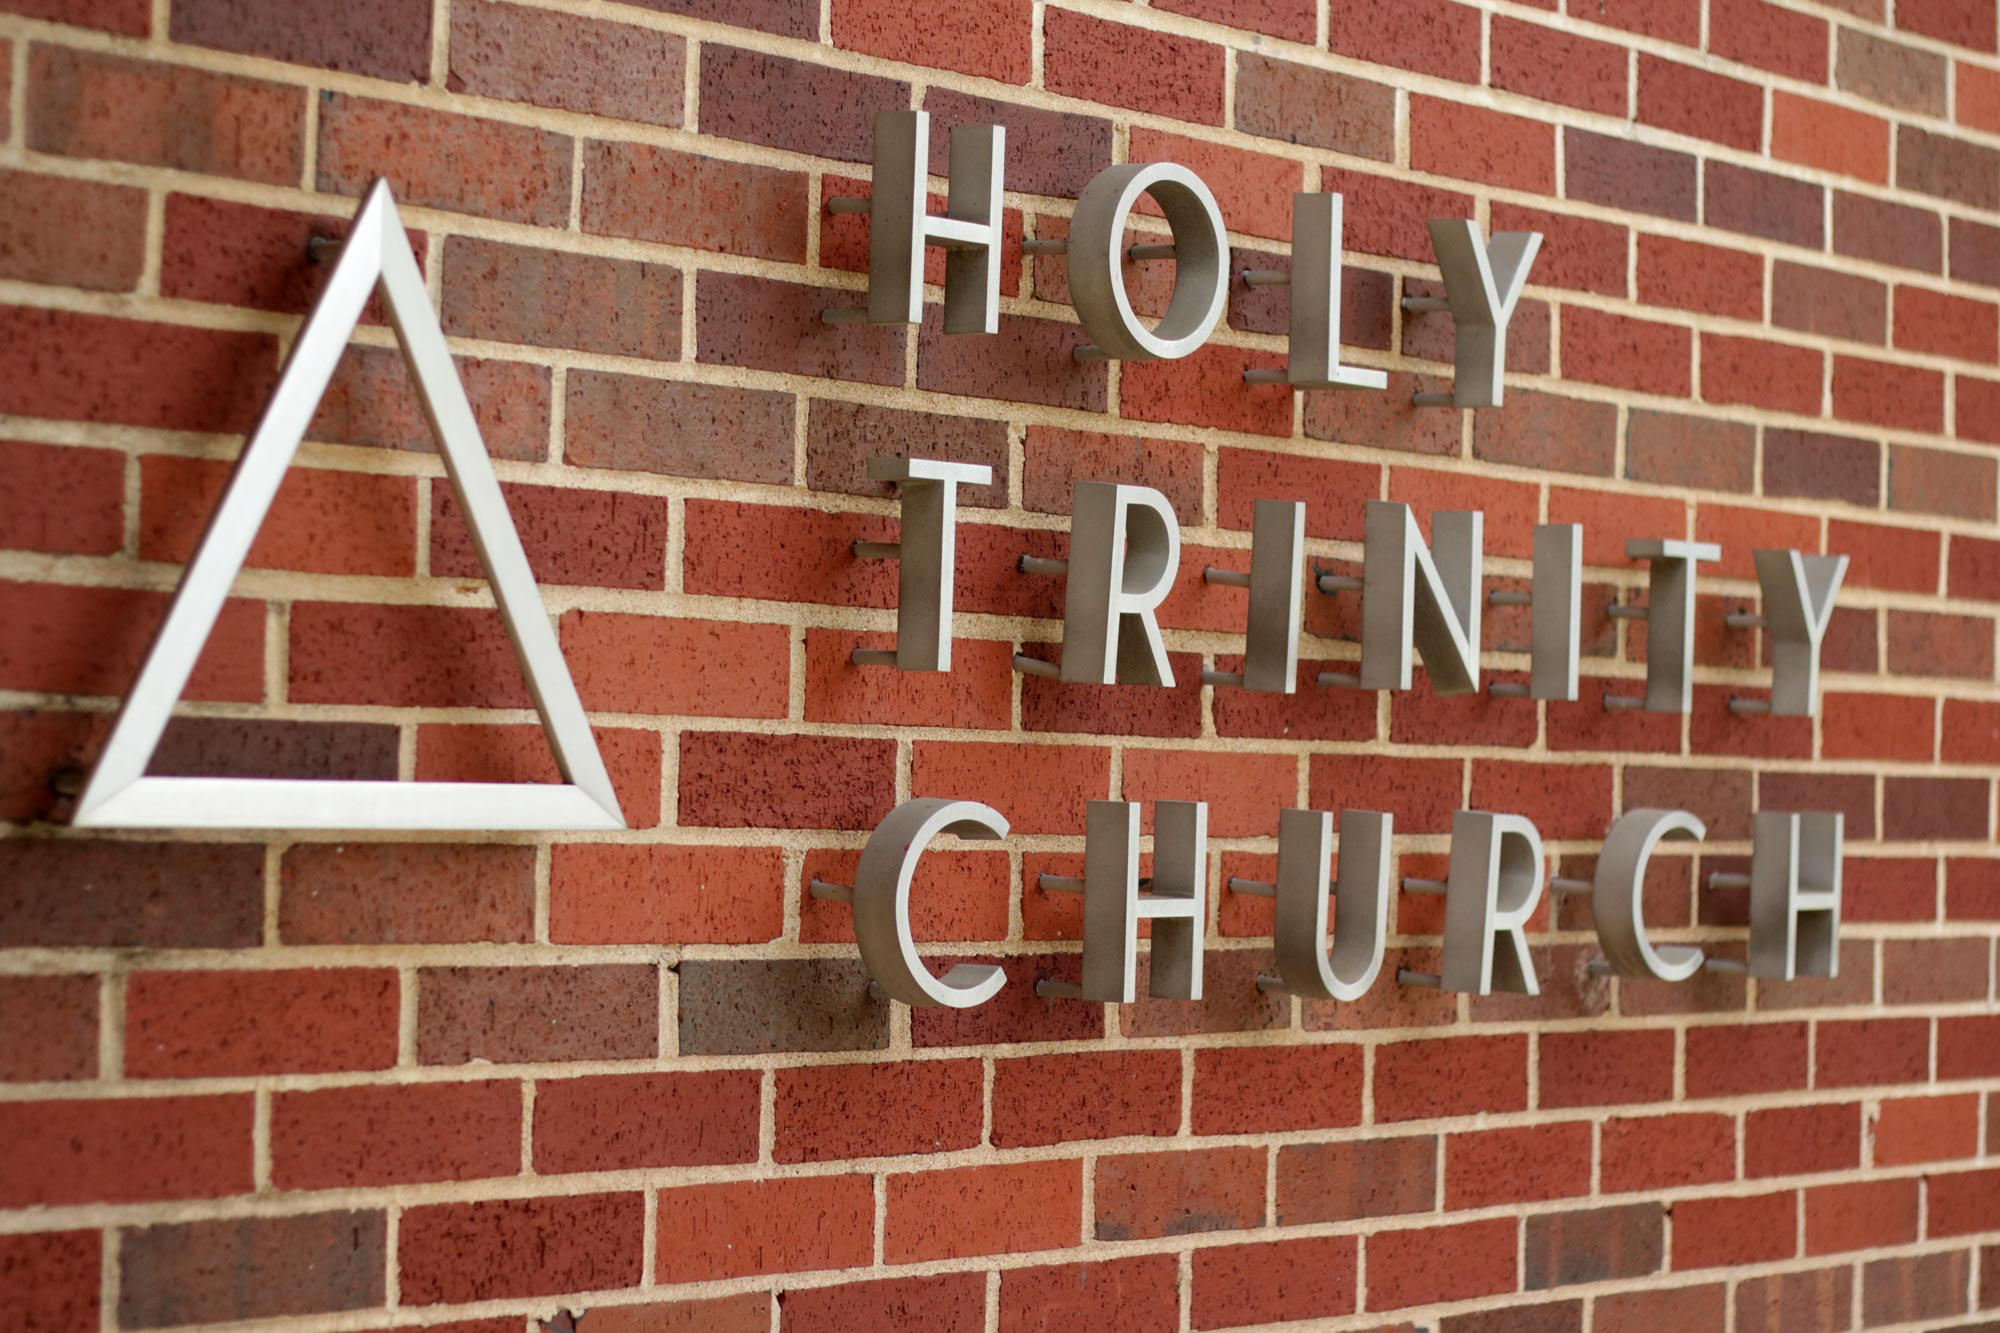 Sign on the building at Holy Trinity Catholic Church, with the name of the parish